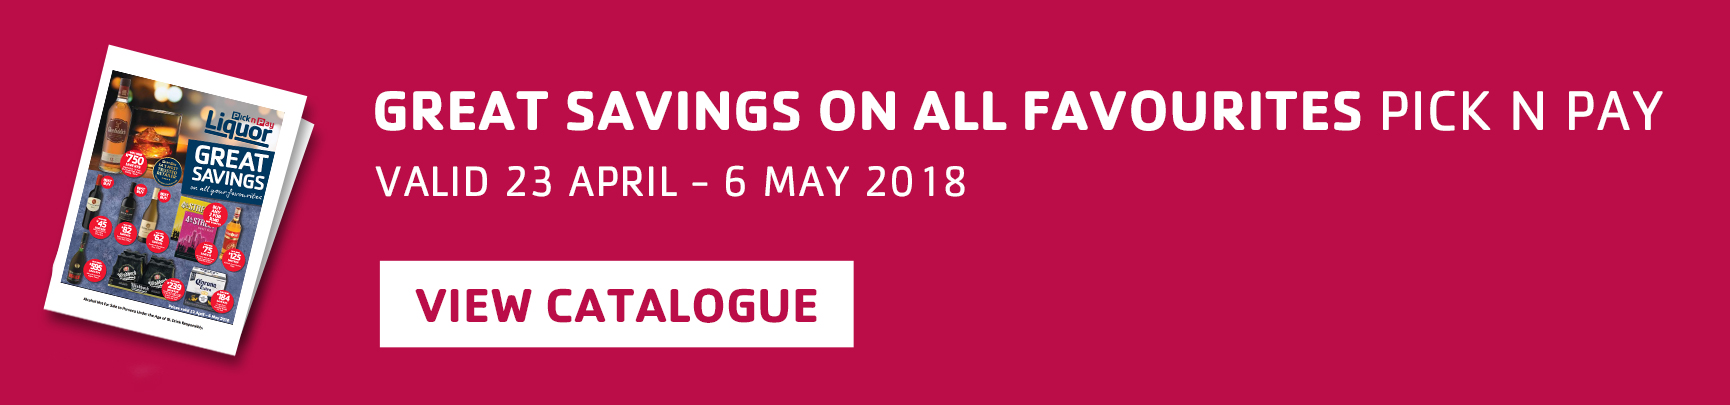 Savings-on-all-favourites-23-Apr-18.jpg